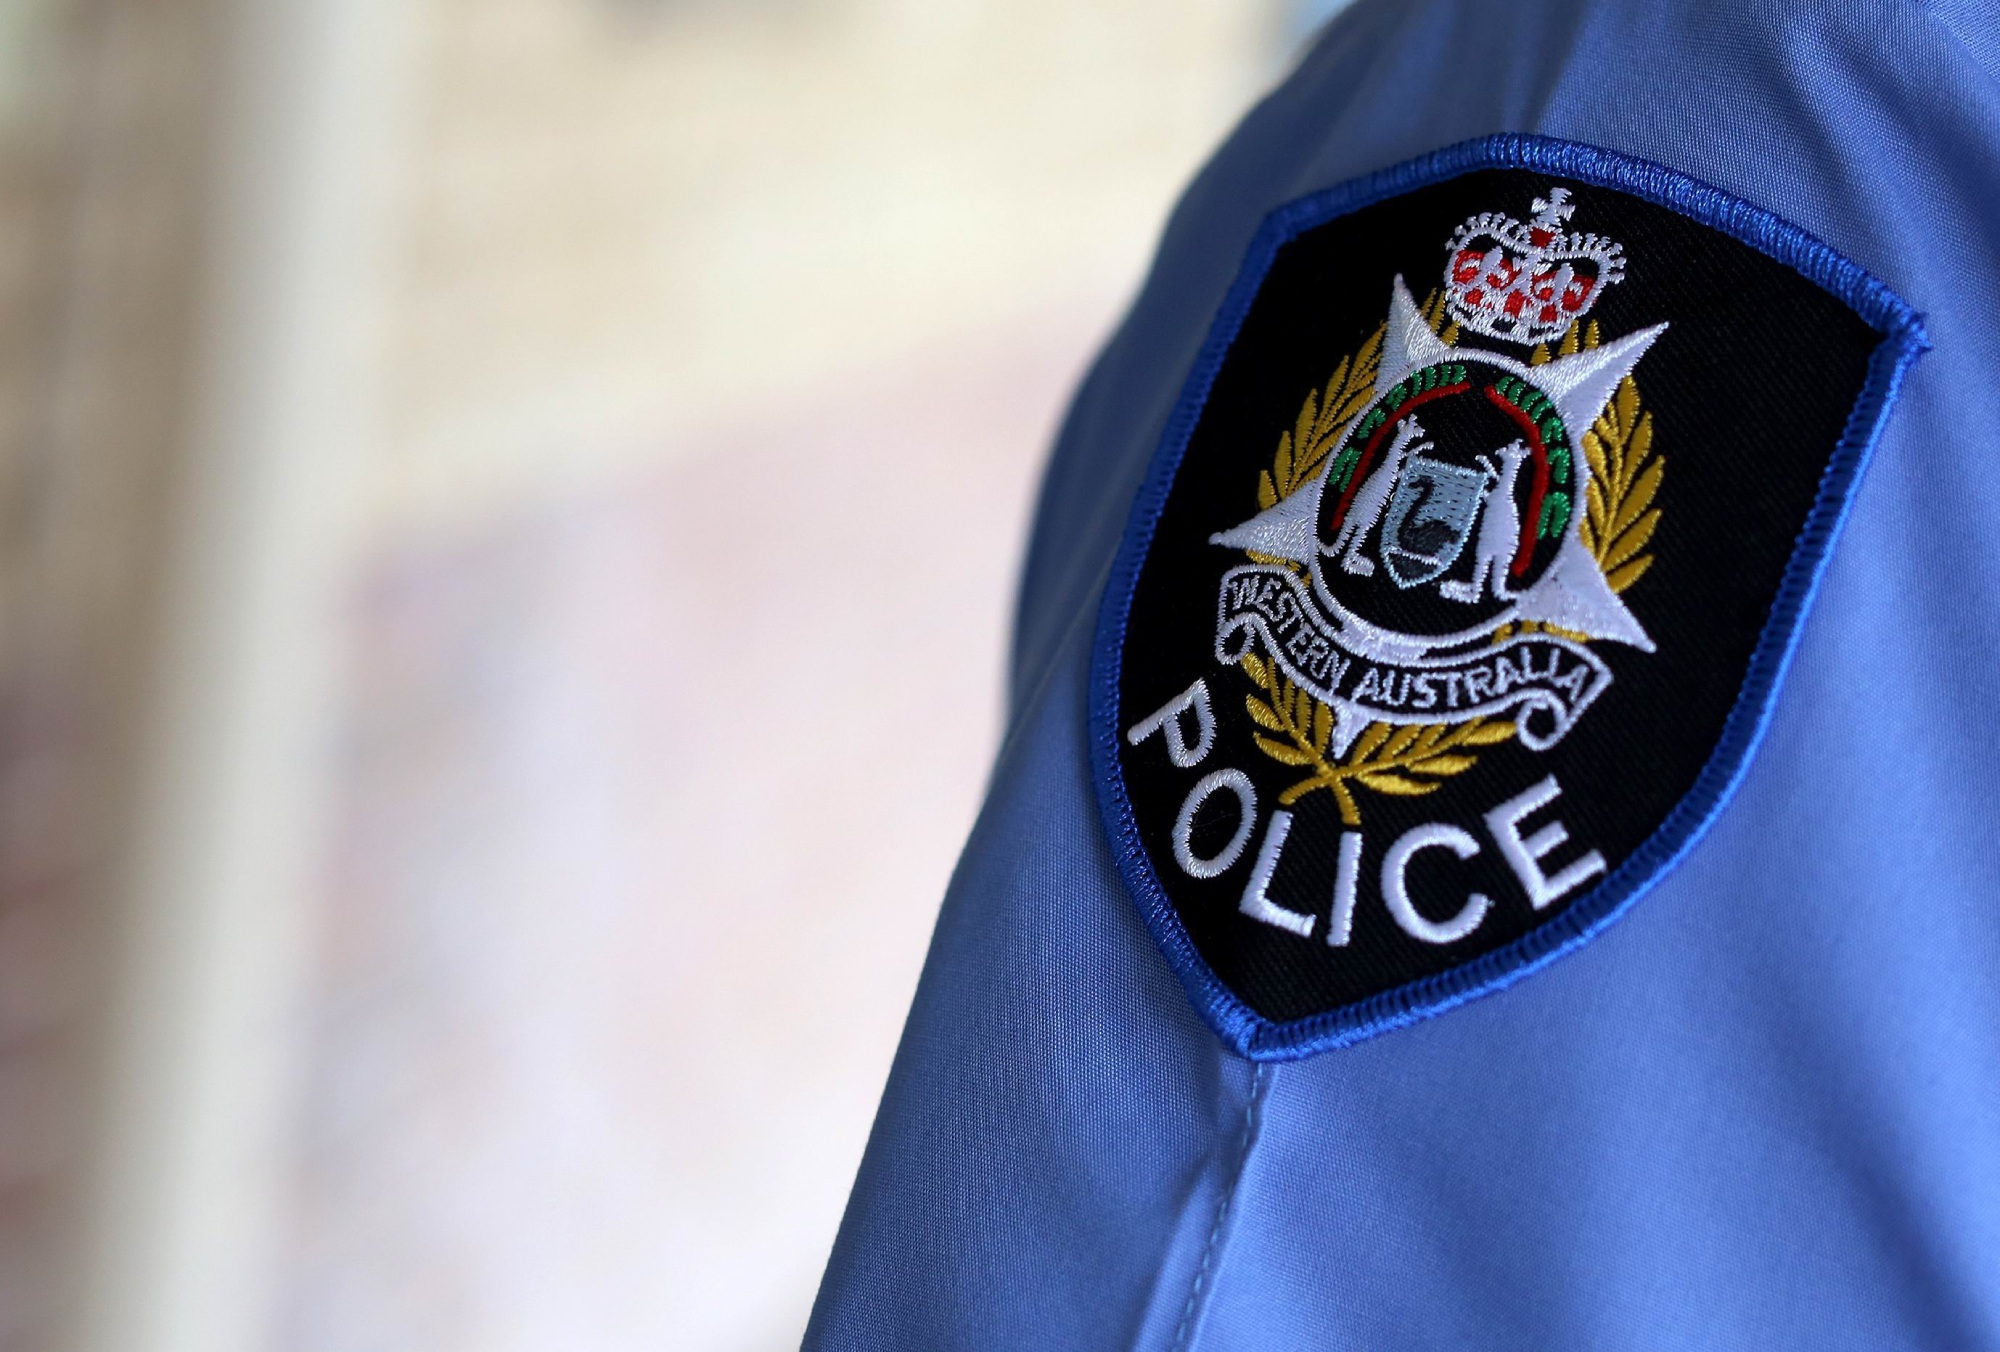 Girrawheen man charged with attempted murder over altercation in May